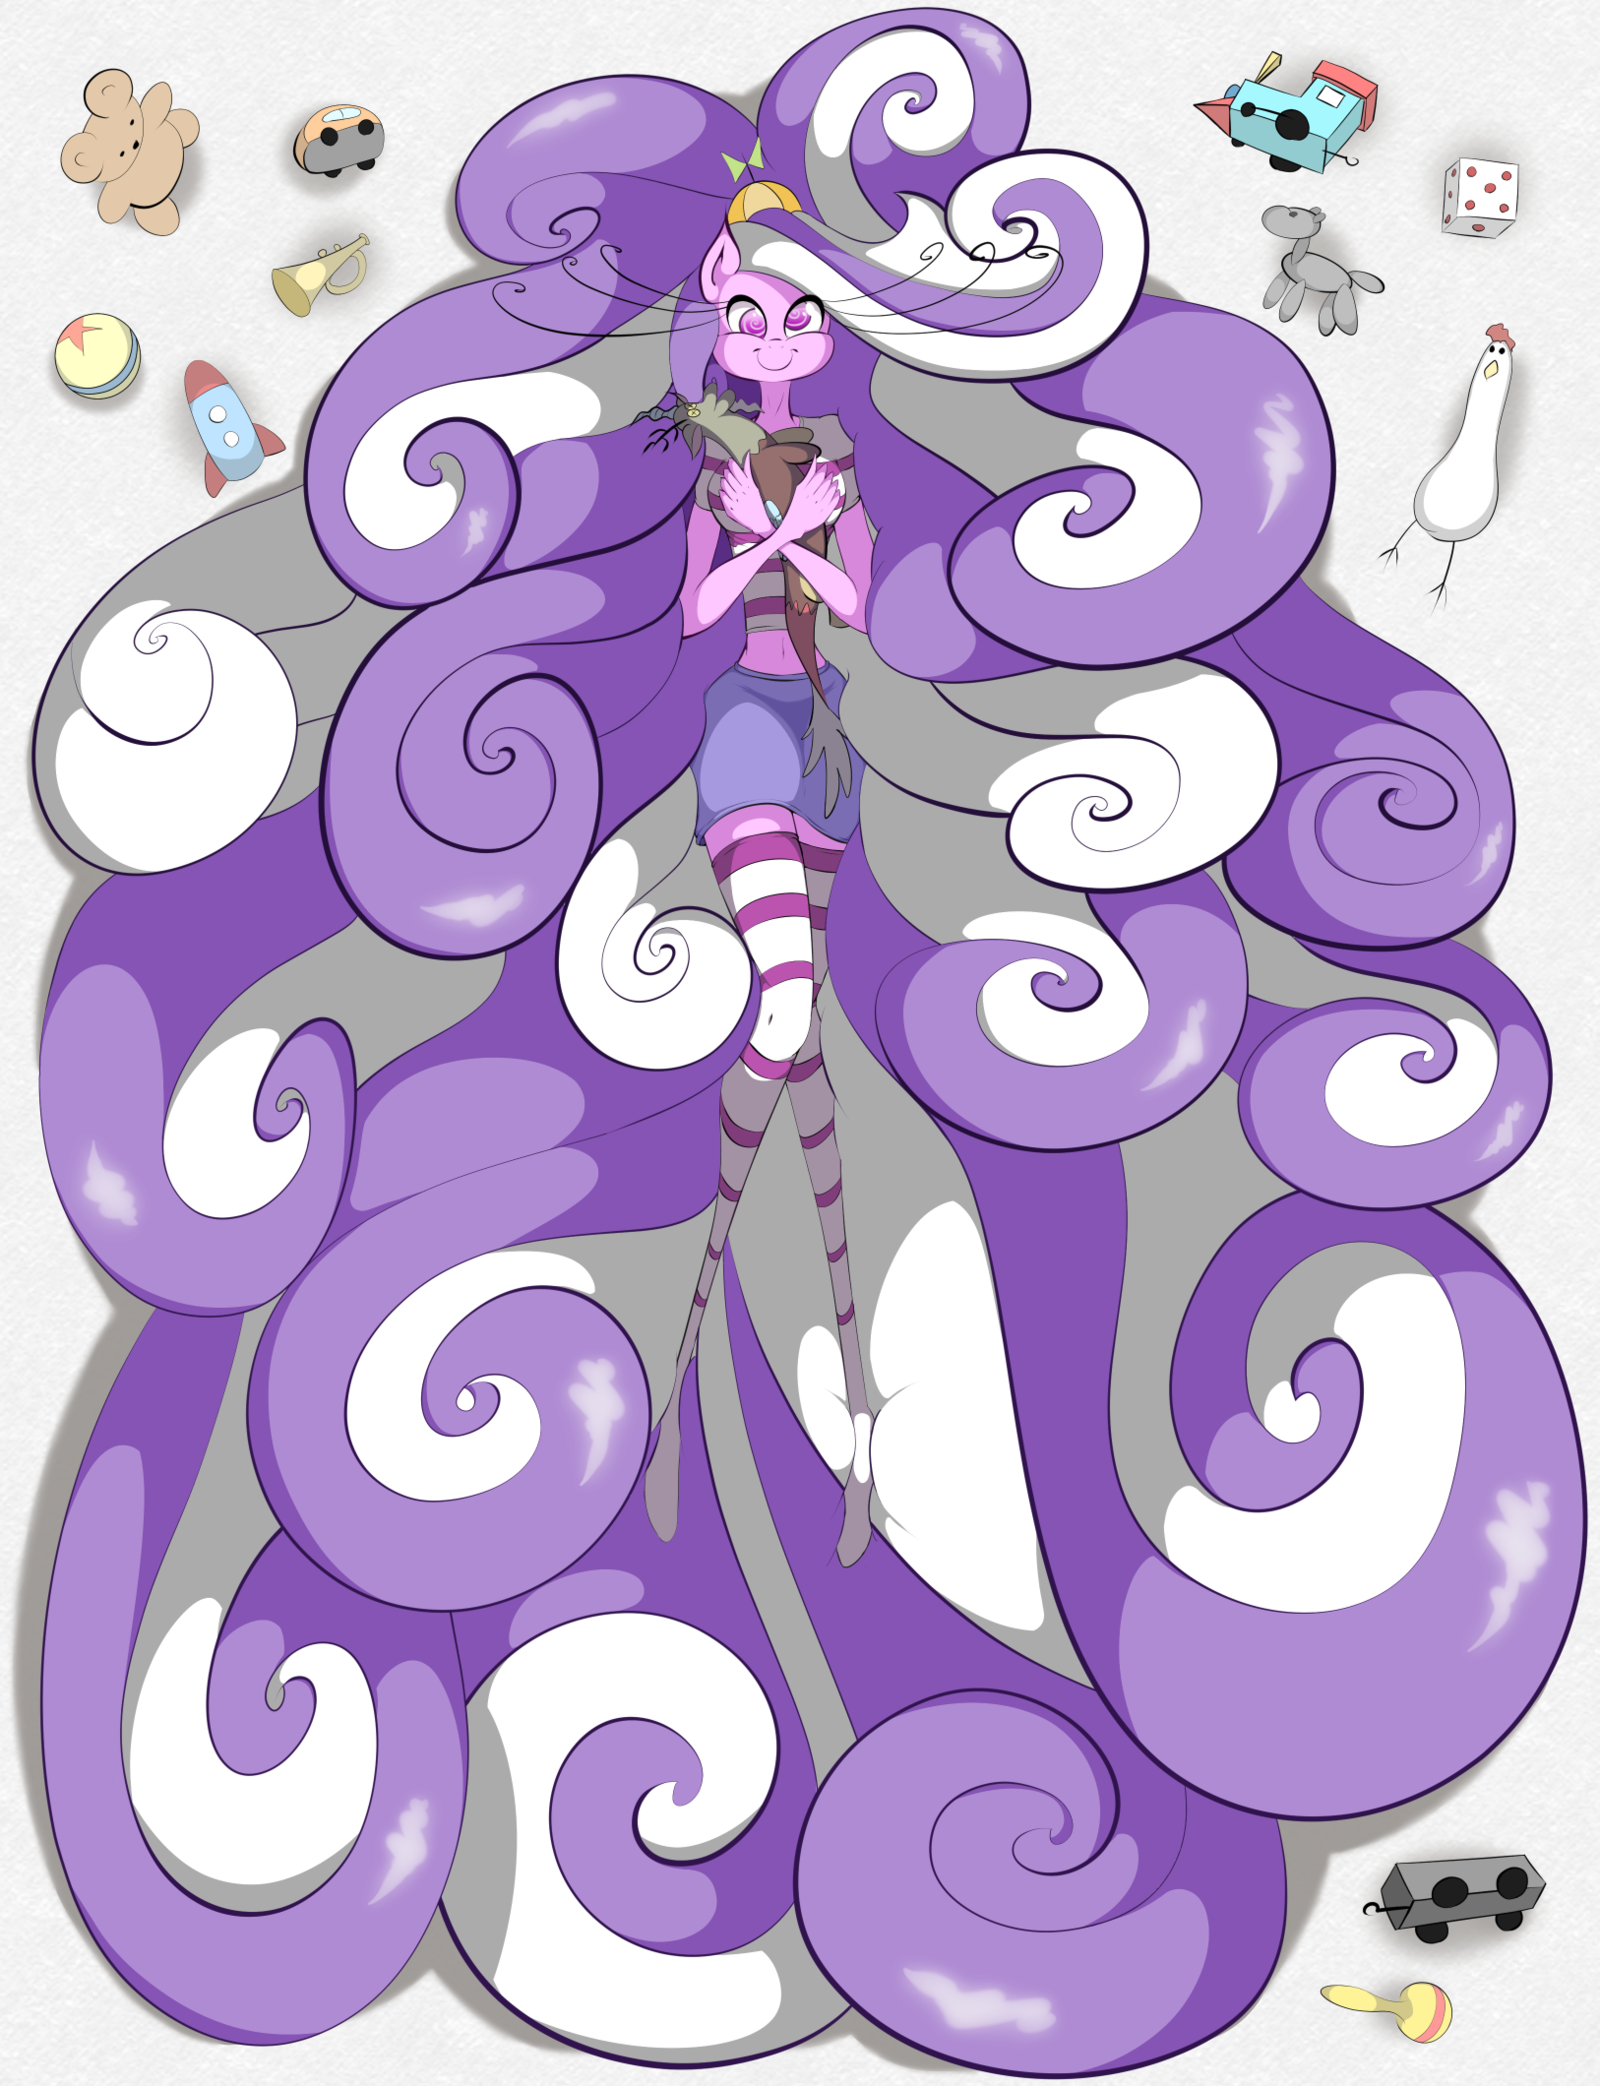 Fluttershy Pony Purple Violet Lilac Pattern Design